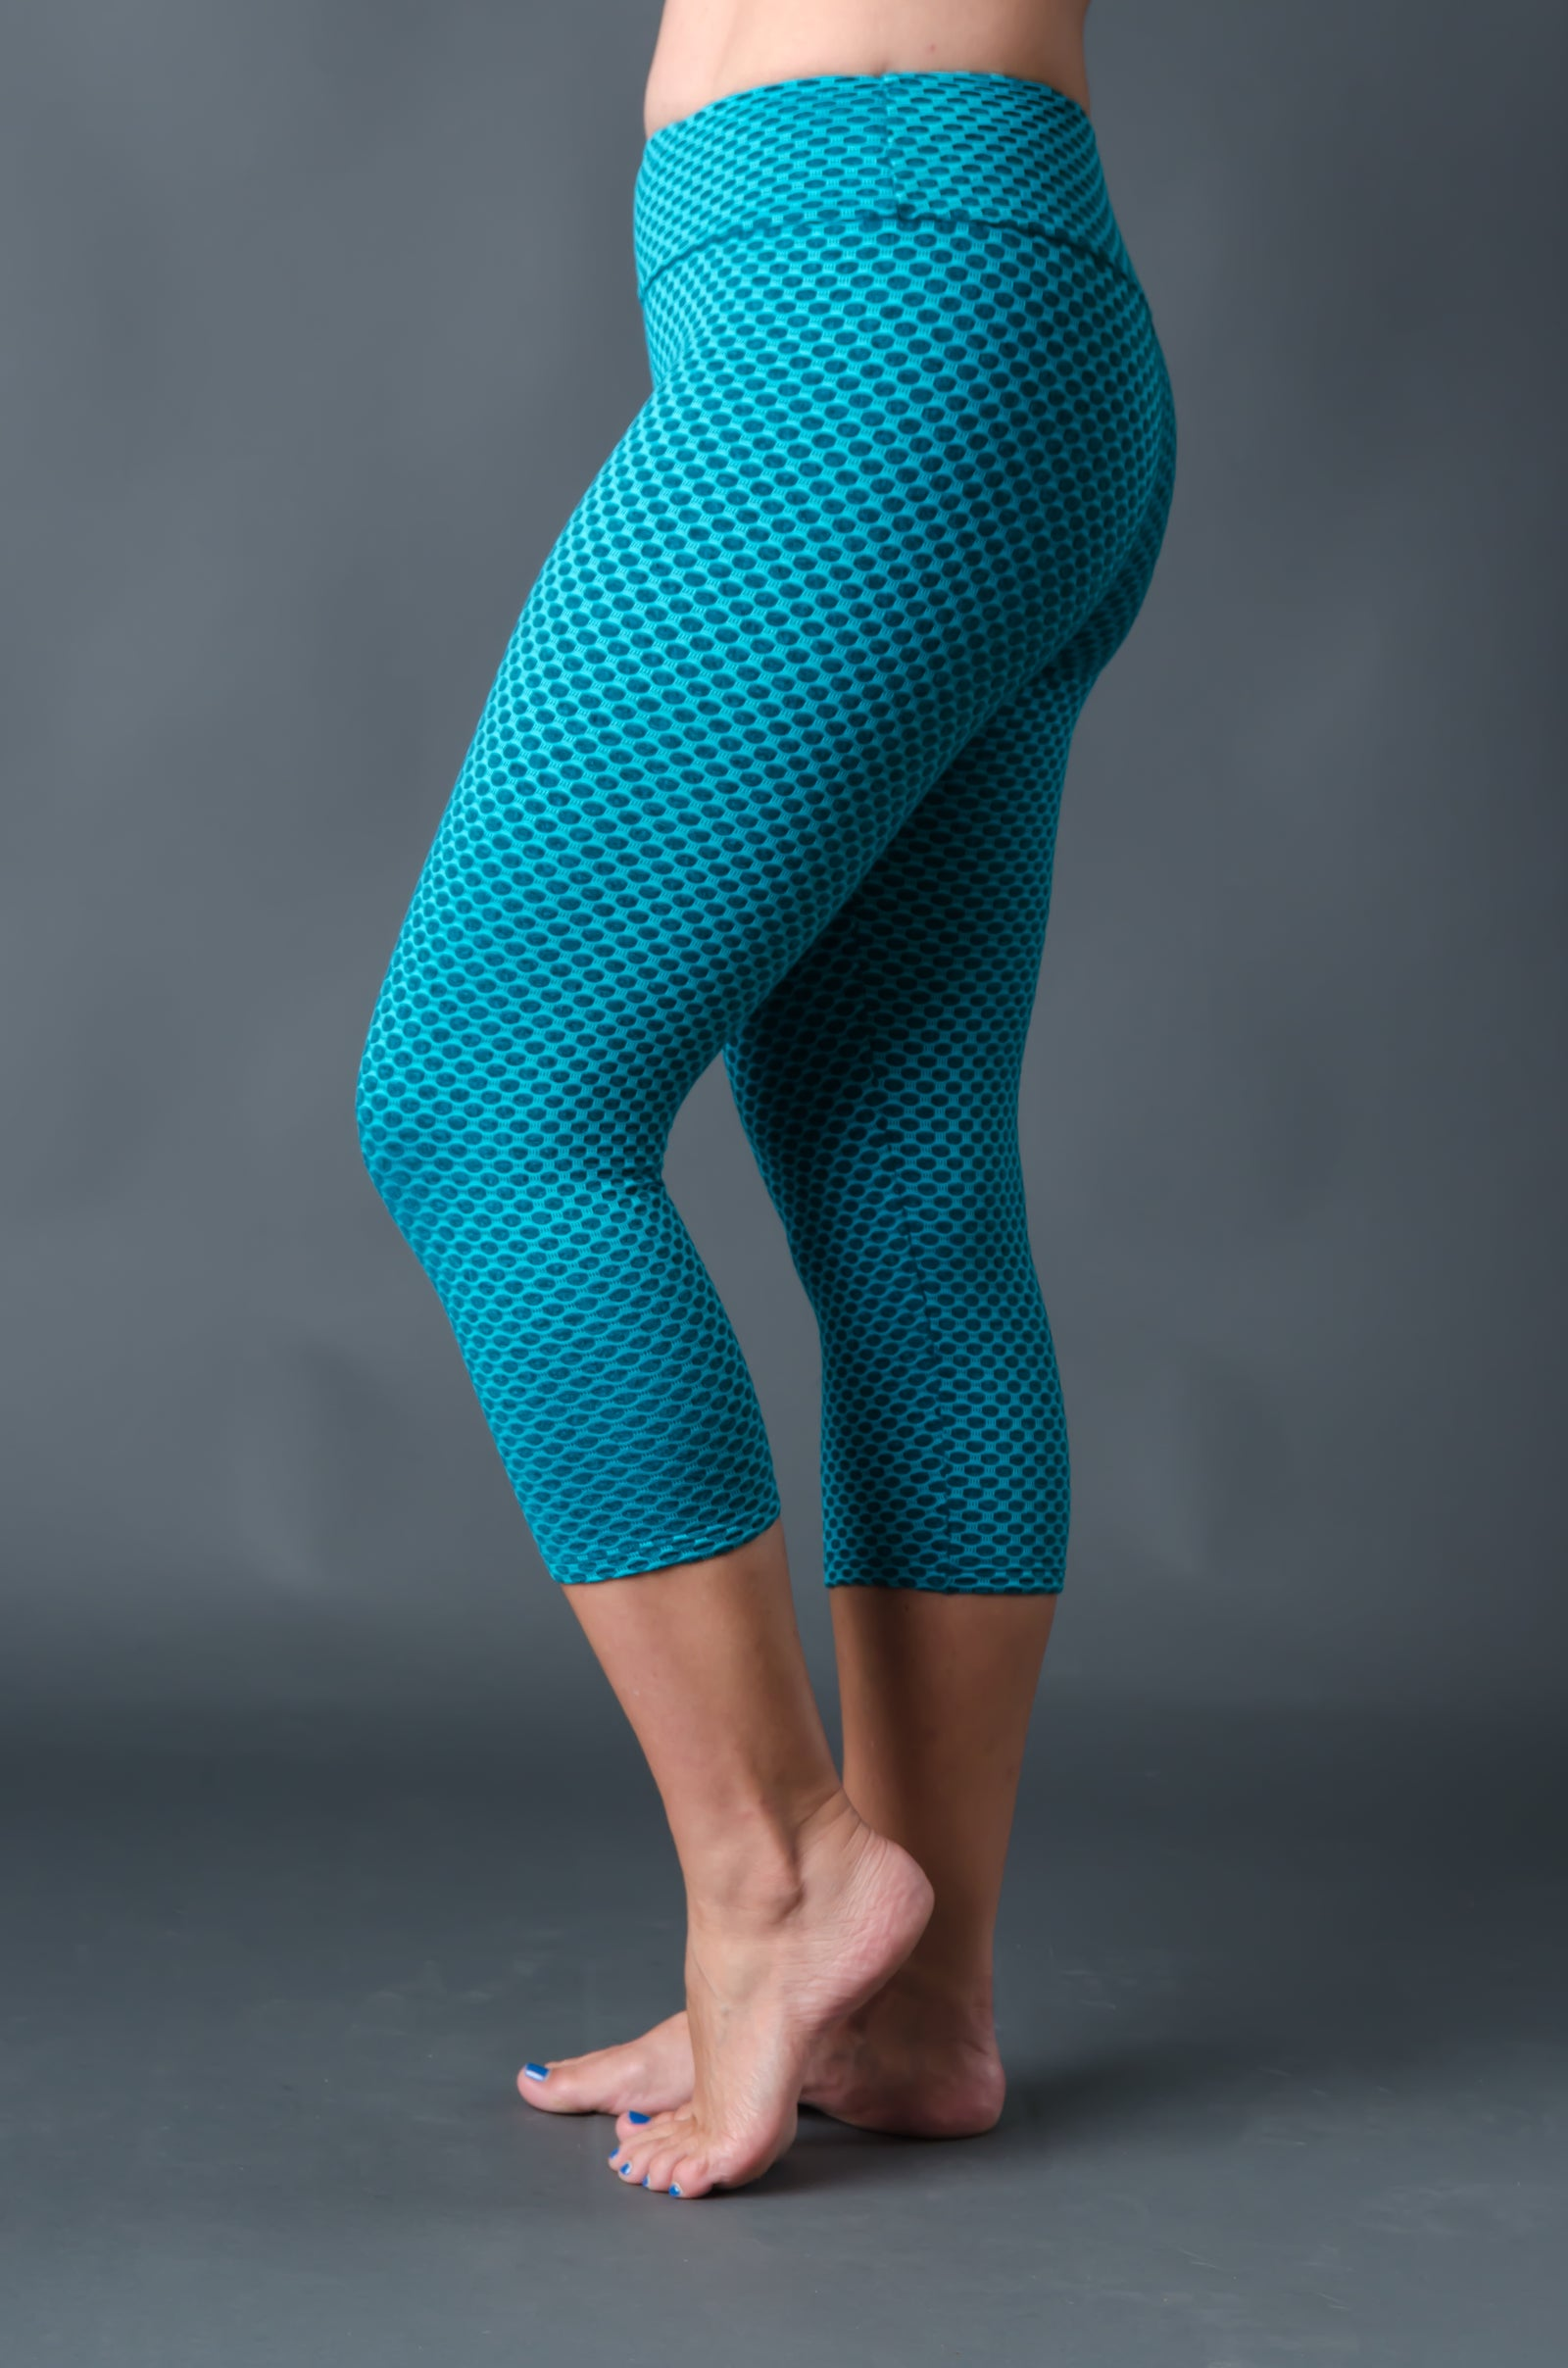 Copa Collection - (Capri) - Teal